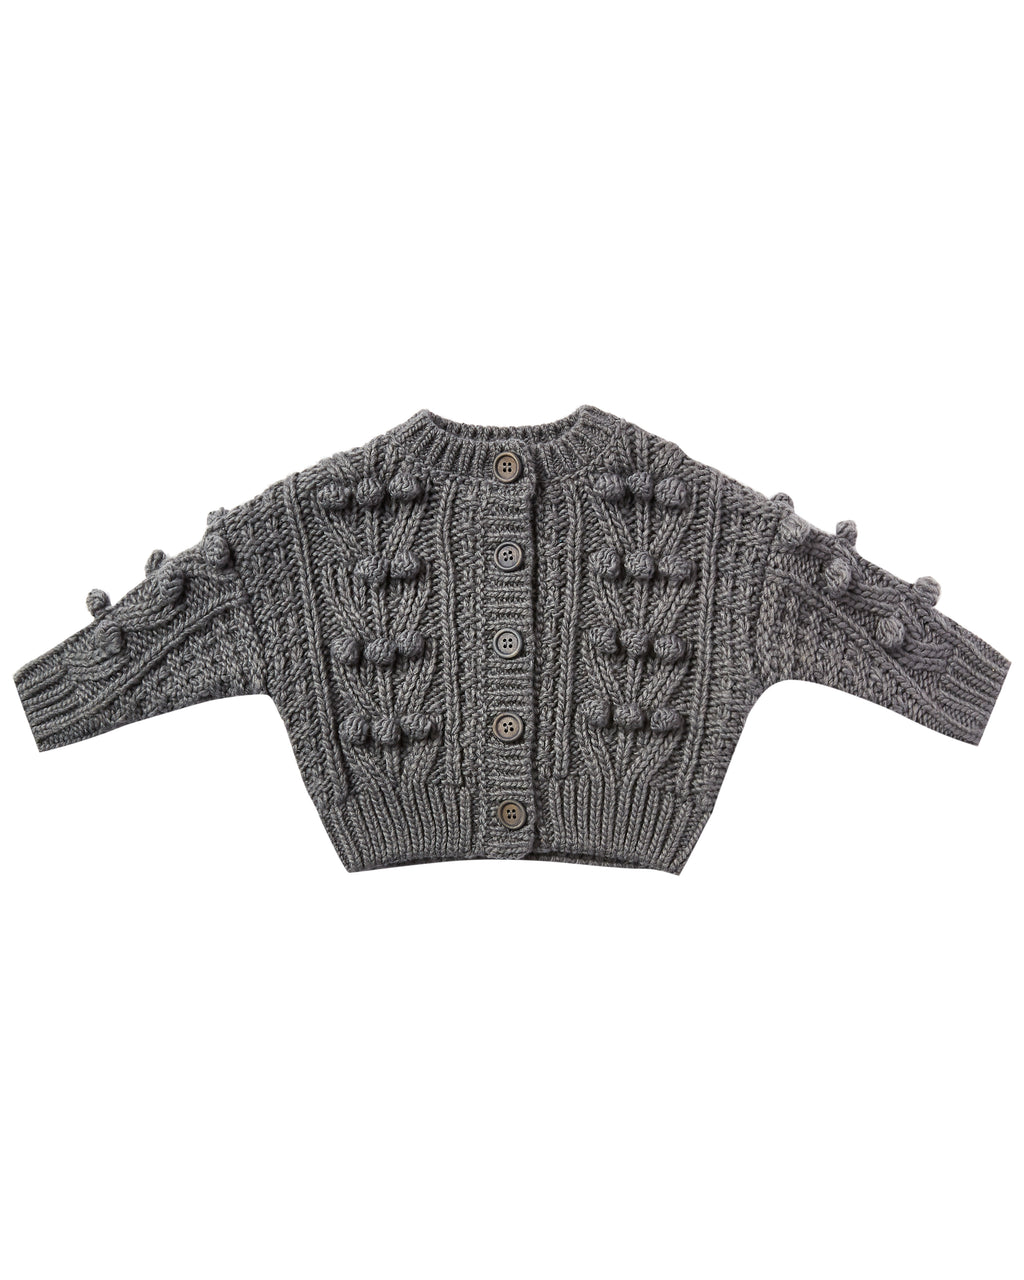 Rylee + Cru Bobble Cardigan - Washed Indigo